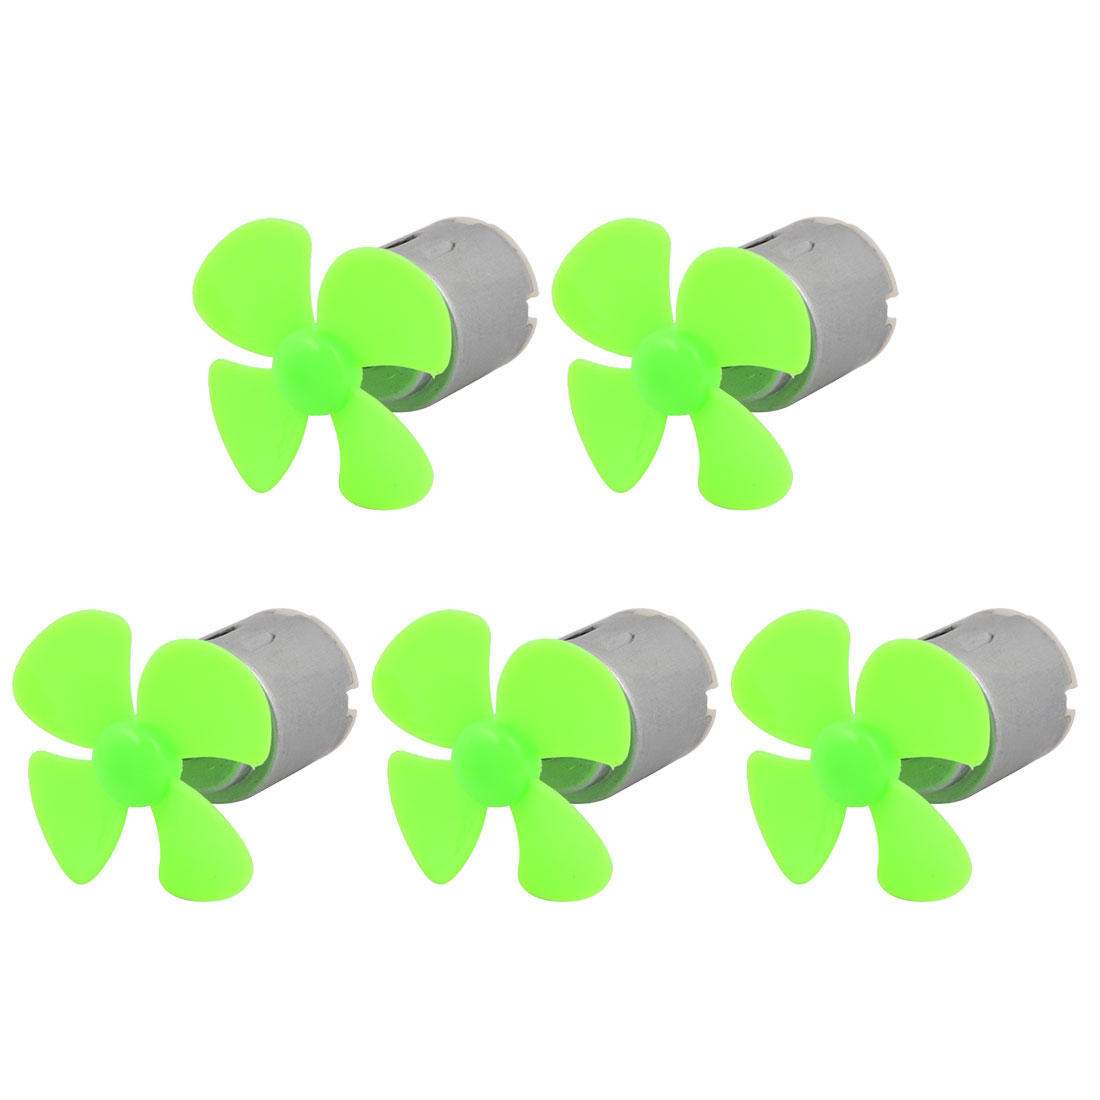 5pcs DC 3V 0.13A 17200RPM Strong Force Motor 4 Vanes 40mm Green Propeller for RC Aircraft